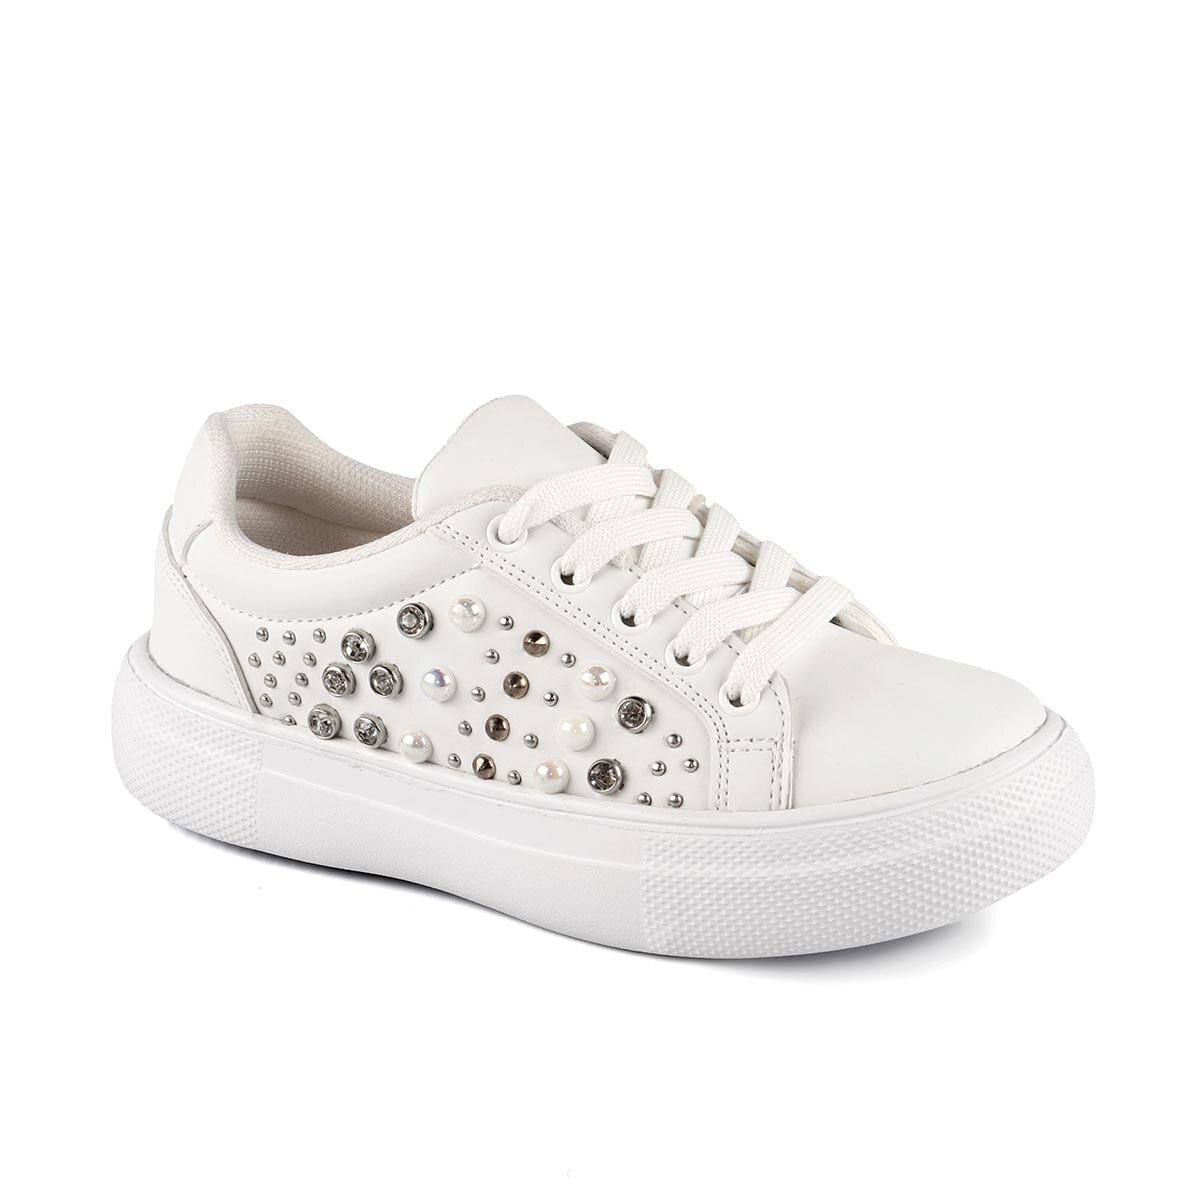 FLO 970.19Y.433 FILET White Female Child Thick Soled Sneaker VICCO